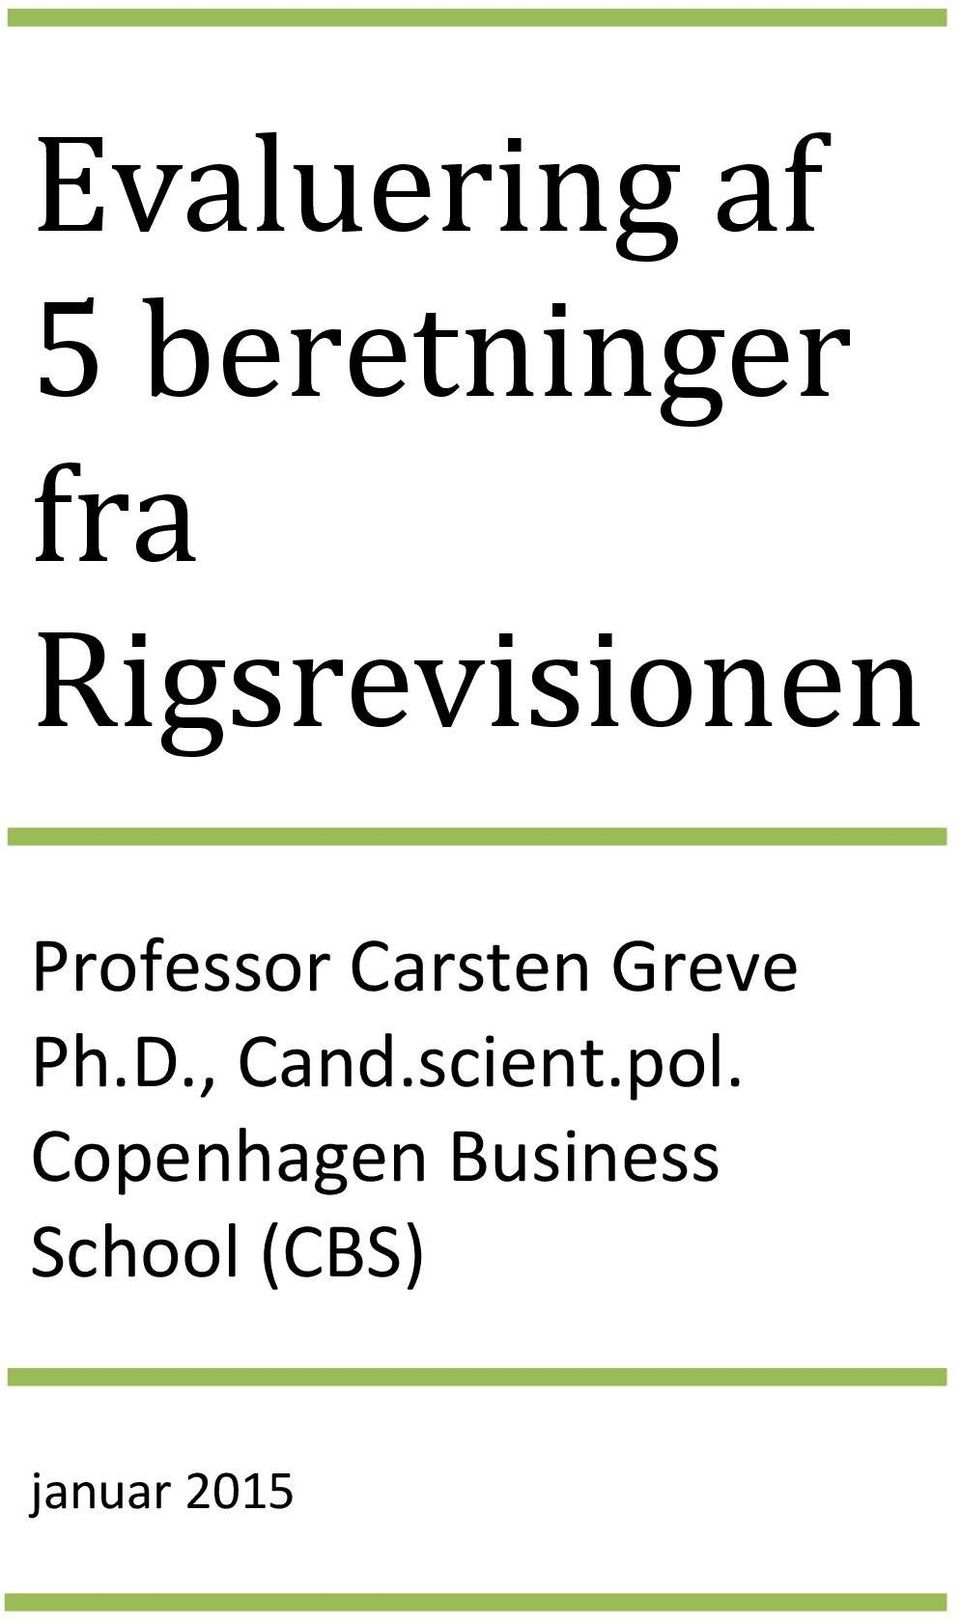 Greve Ph.D., Cand.scient.pol.